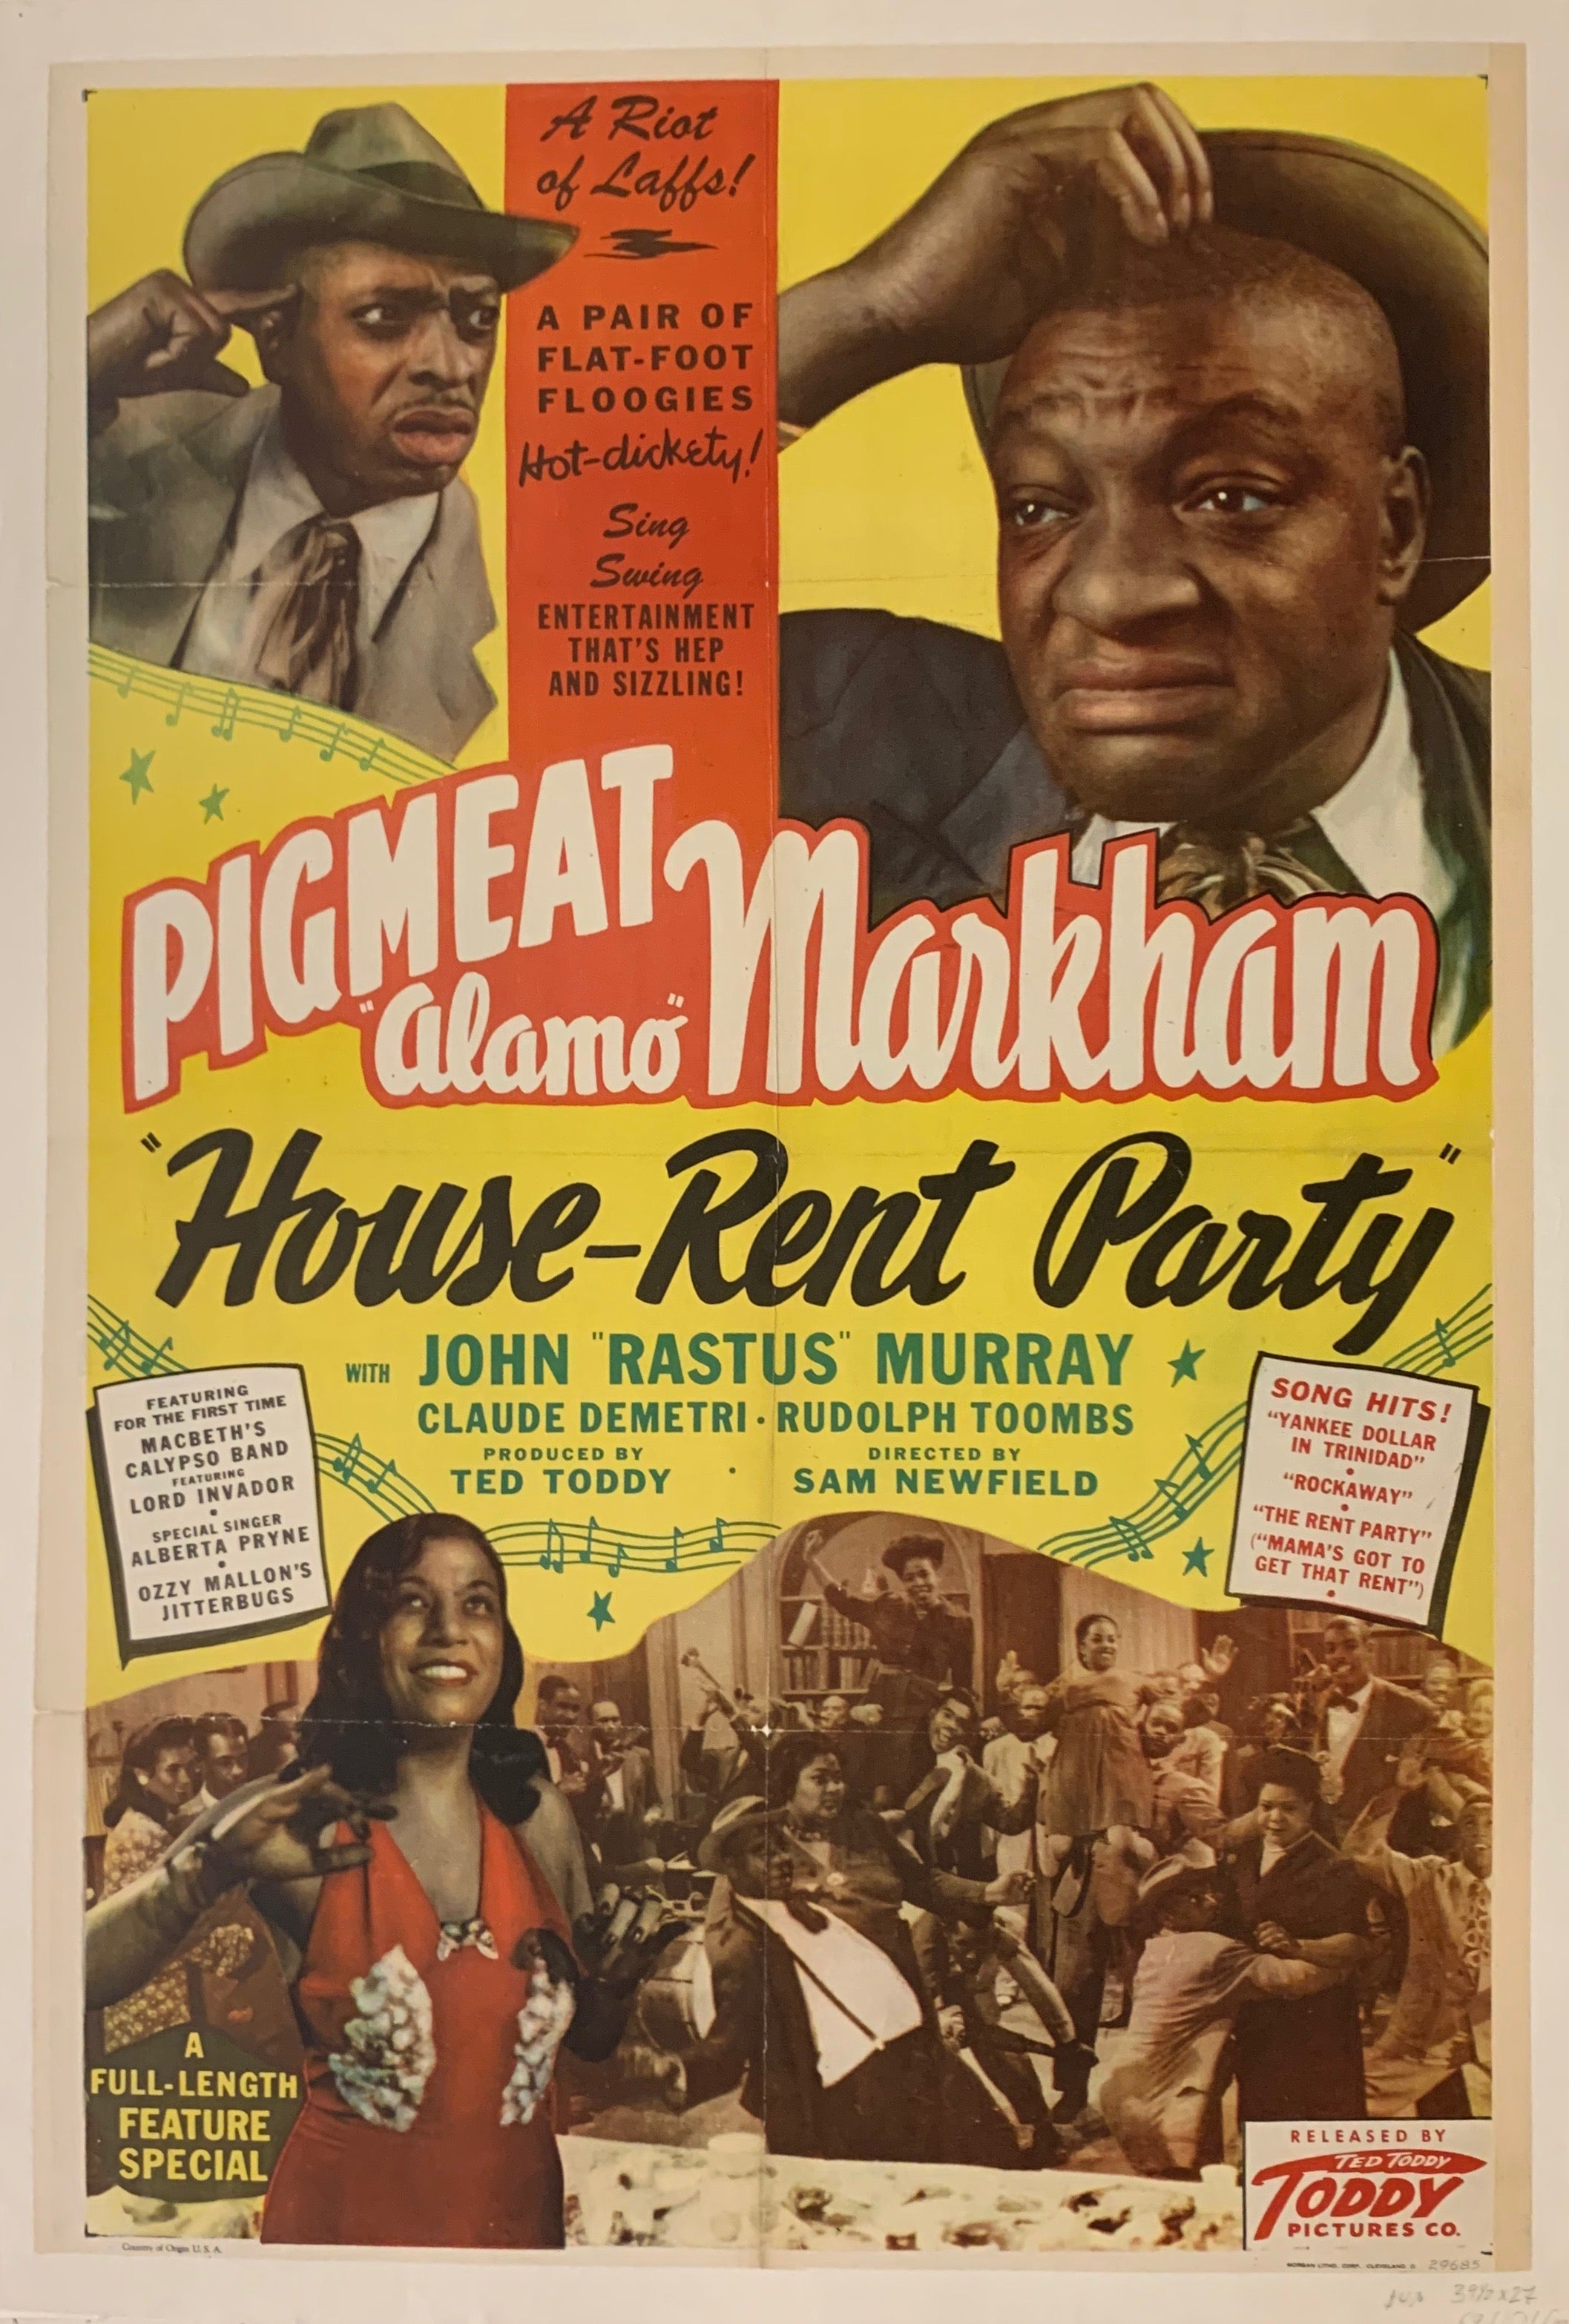 House Rent Party Film Poster